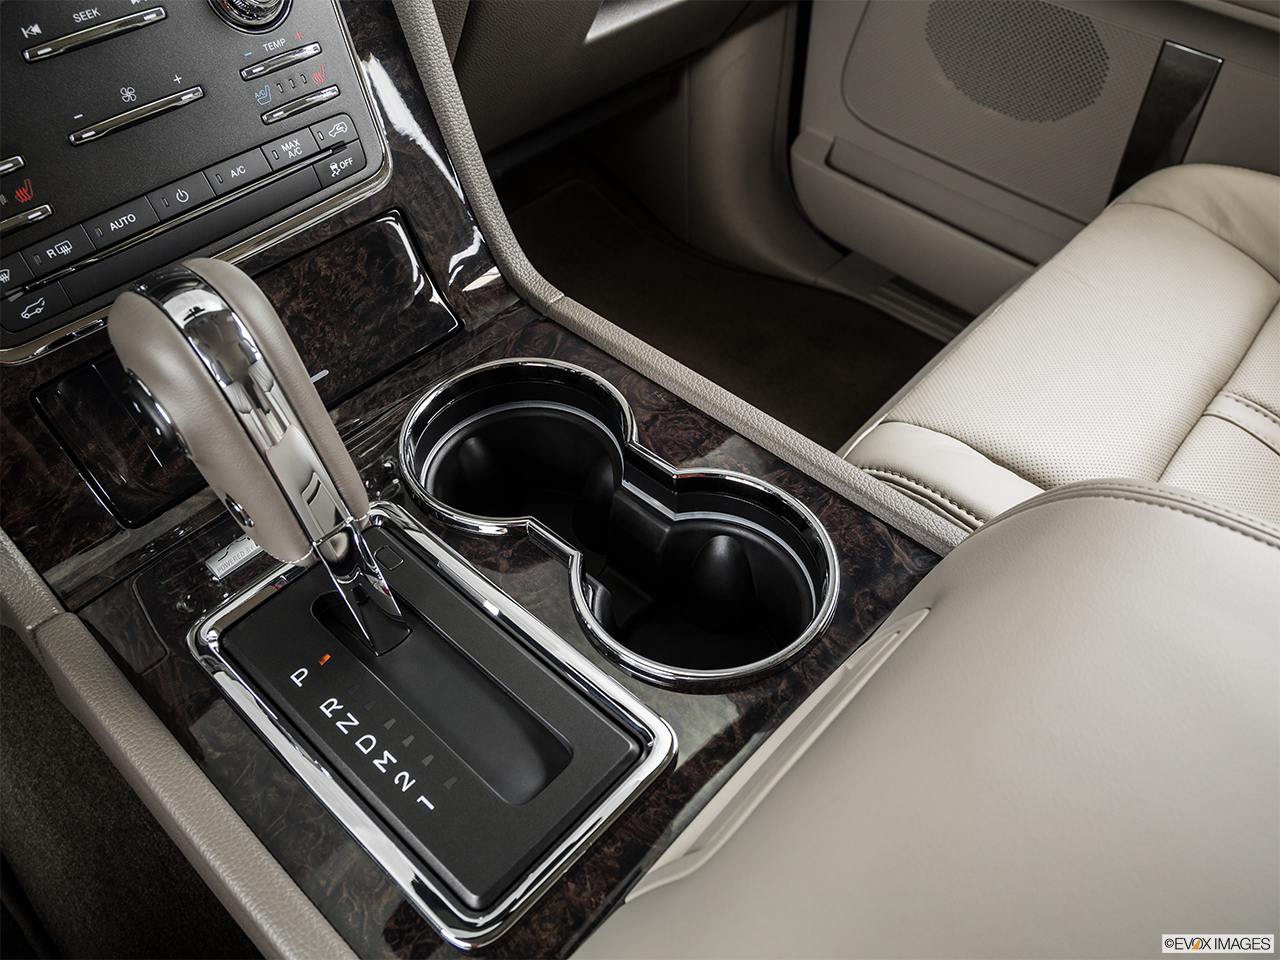 2015 Lincoln Navigator Base Cup holders.